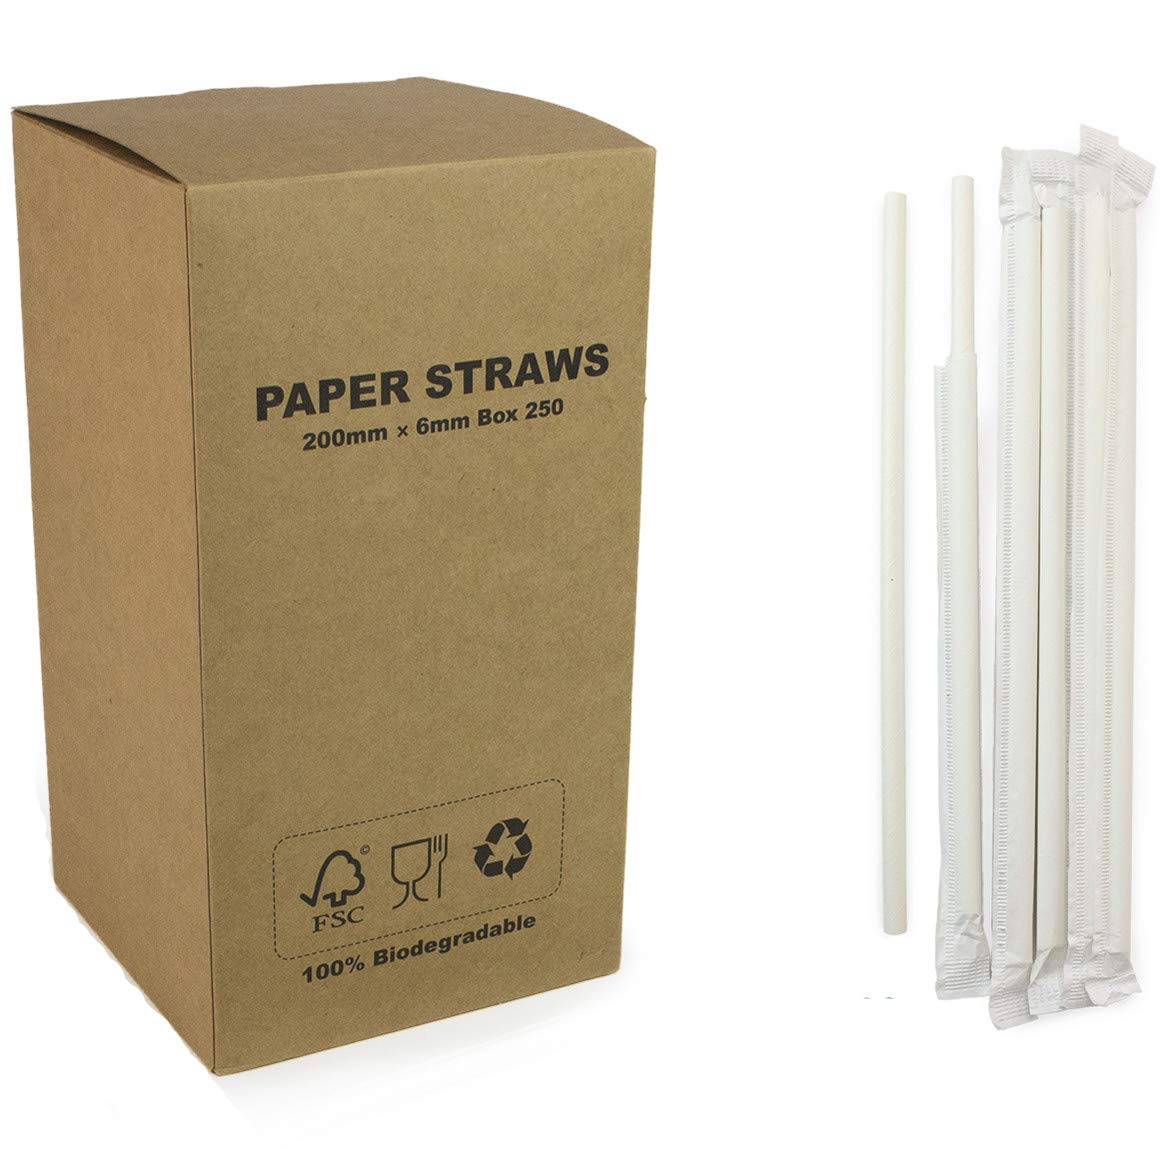 250 pcs Individually Paper Wrapped Plain White Paper Straws Bulk, Pure All Solid White Paper Drinking Straws for Wedding 1st Birthday Party, Beverage Soda Coffee Restaurant, Cake Pop Sticks